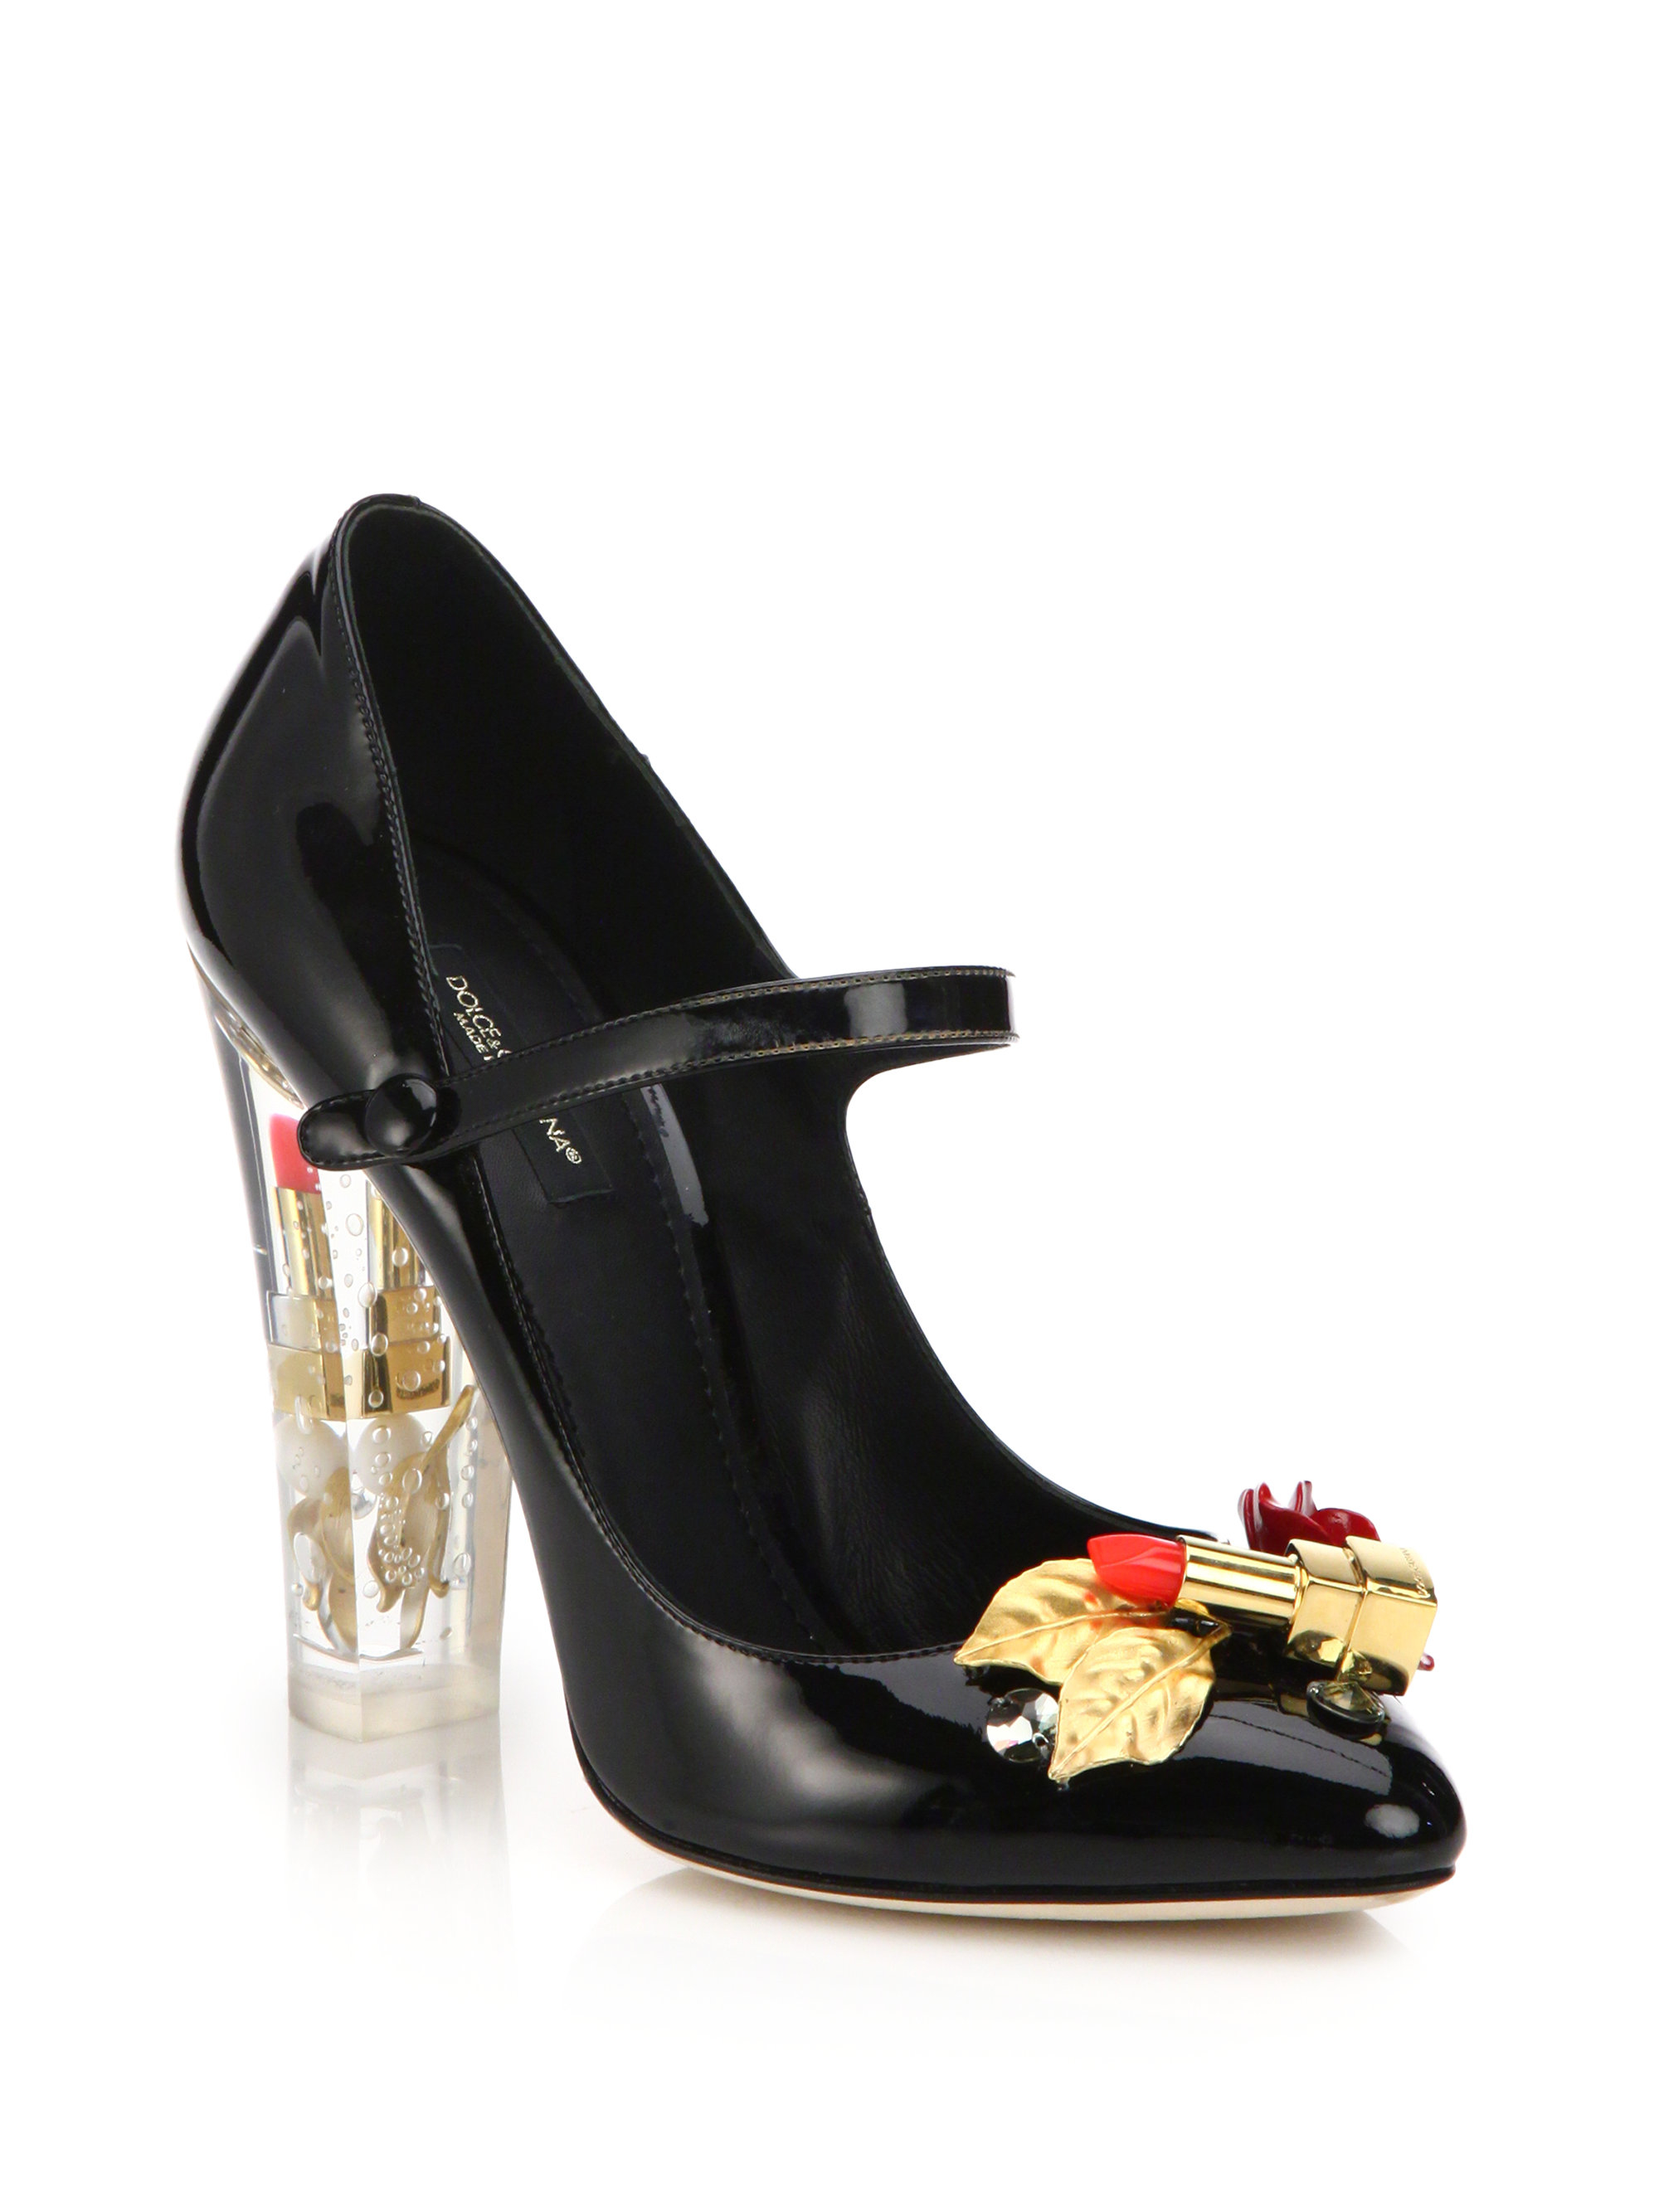 2cc2226206f3 Lyst - Dolce   Gabbana Lipstick-heel Patent Leather Mary Jane Pumps ...